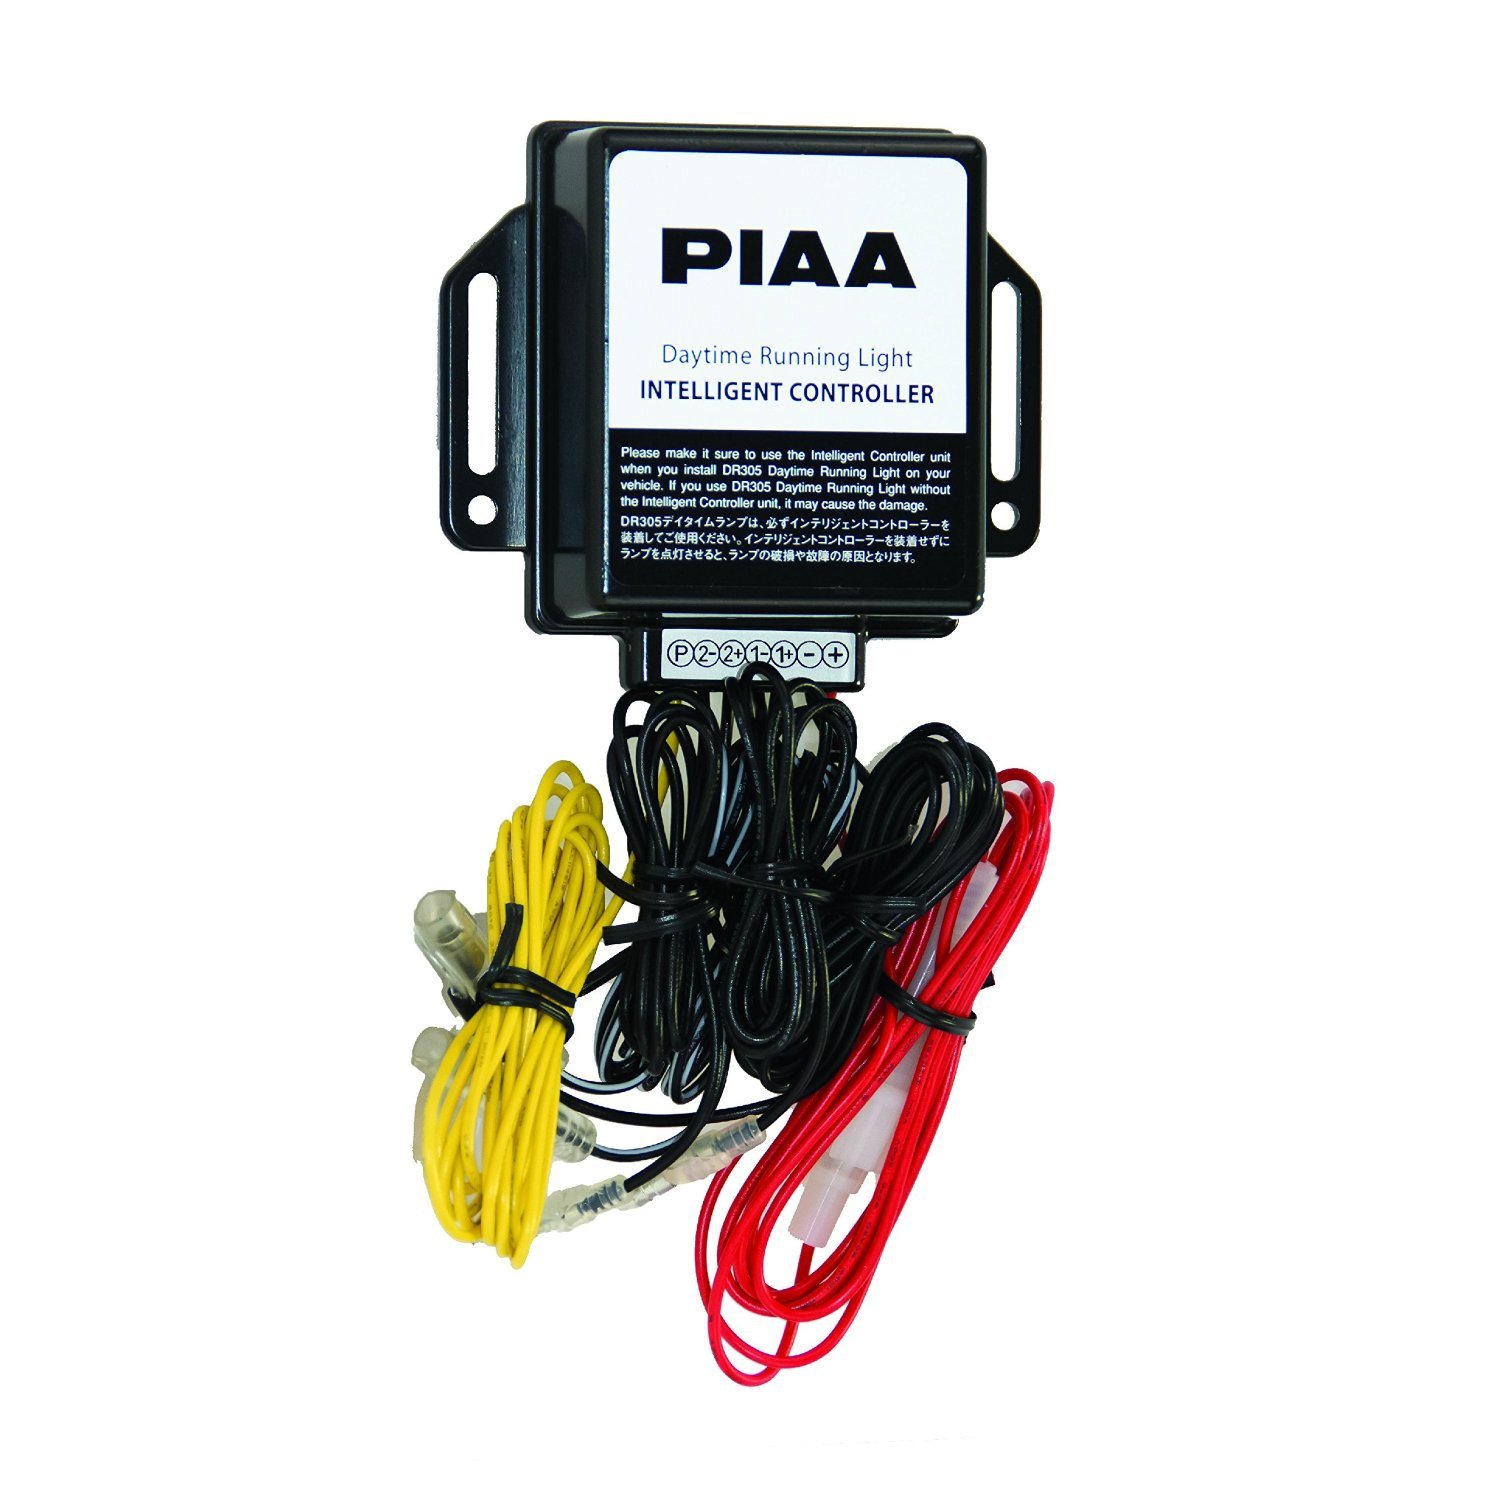 piaa 34305 wiring harness for dr305 drl light kit